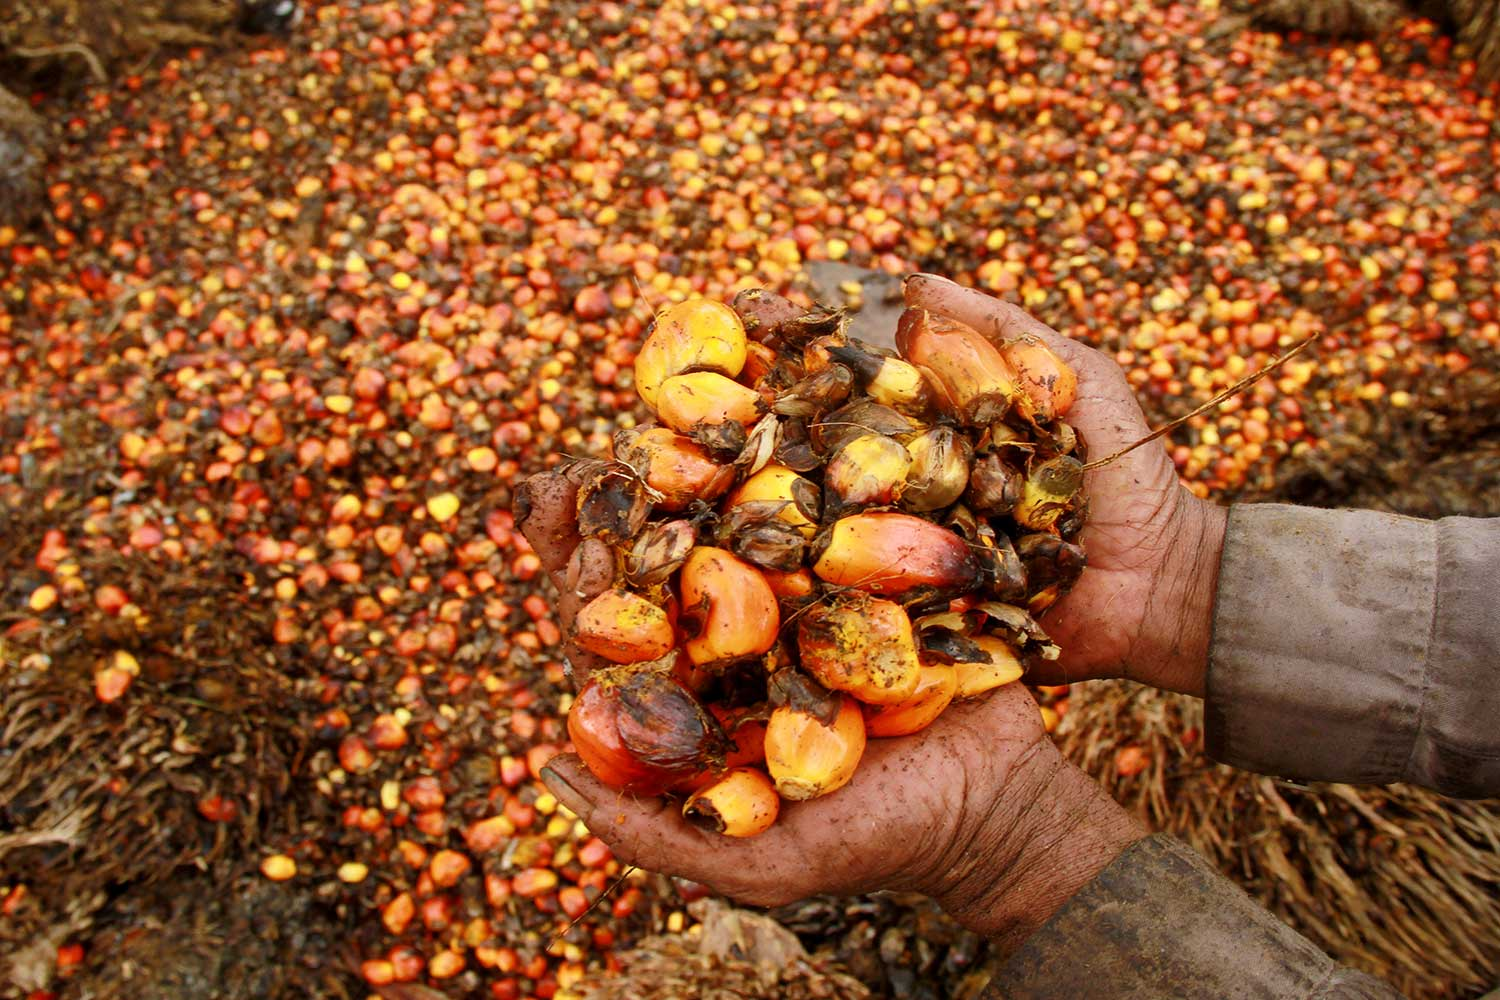 A worker shows palm oil fruits at a palm oil plantation in Topoyo village in Mamuju, Indonesia. (Antara/Reuters photo)